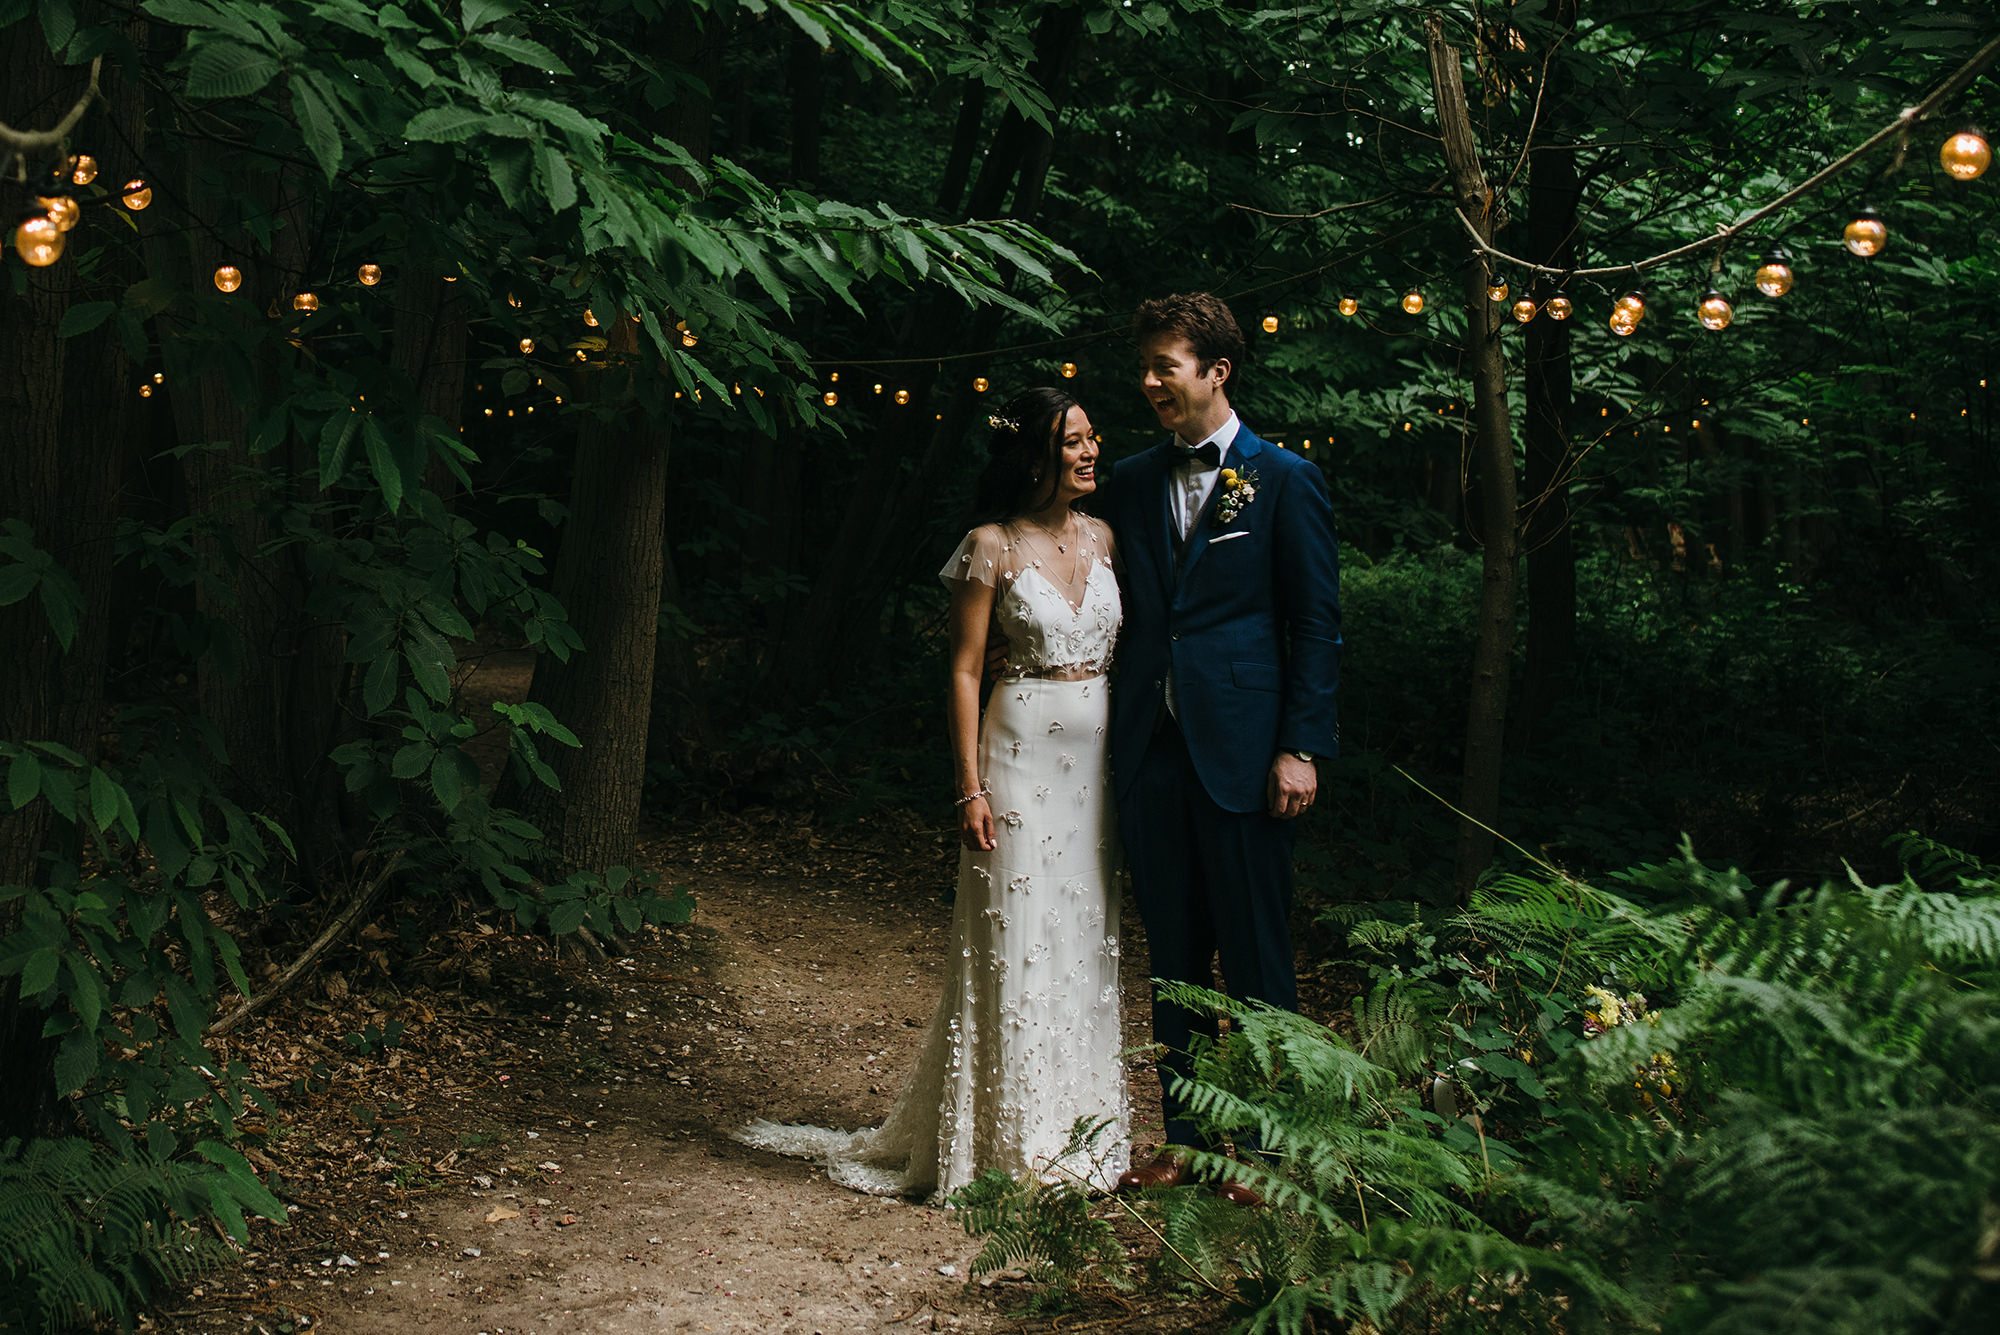 Bride and groom together in woods